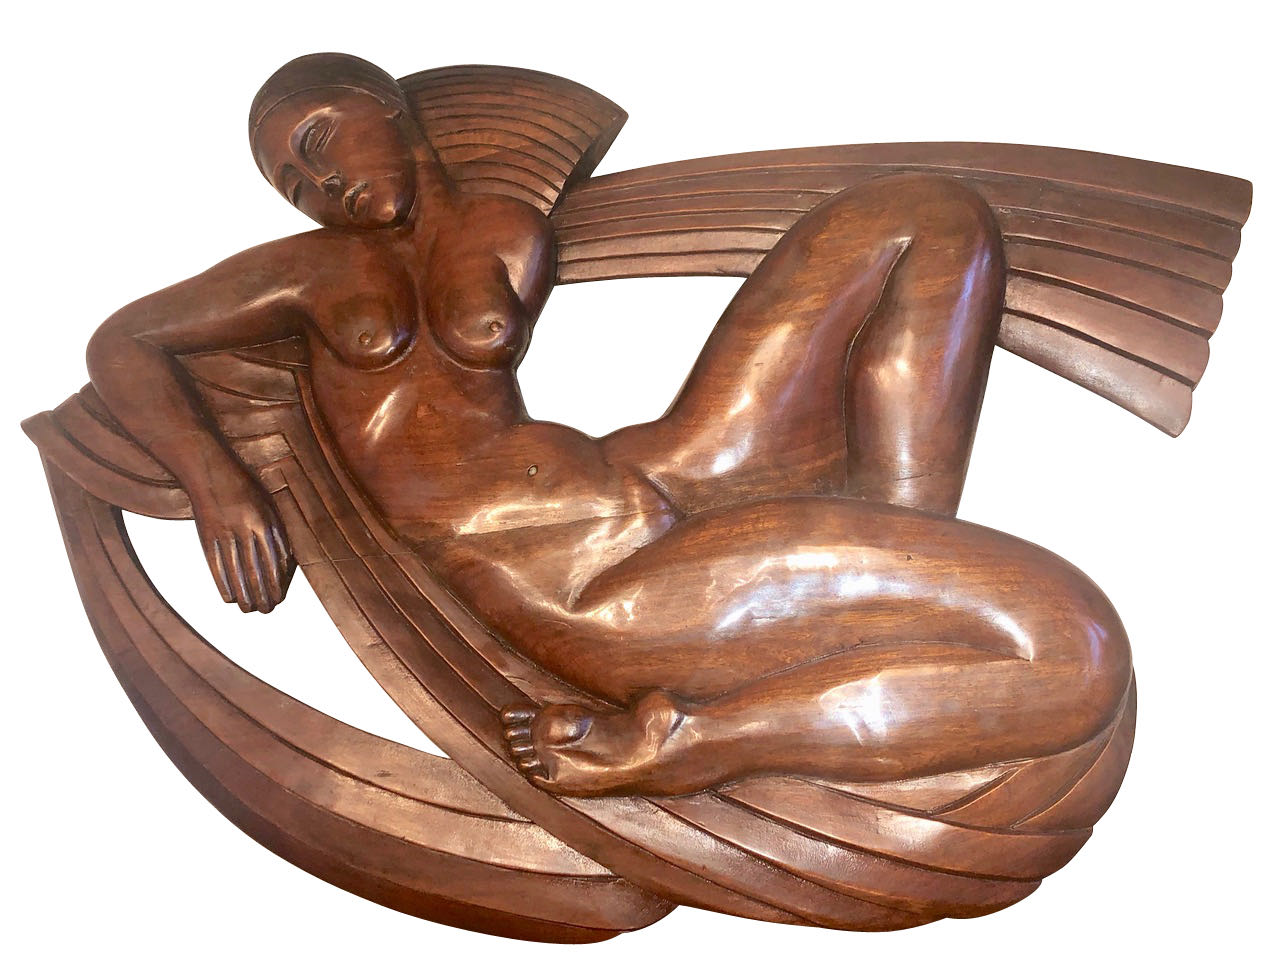 Art Deco Carved Wood Reclining Nude Figure Sculpture